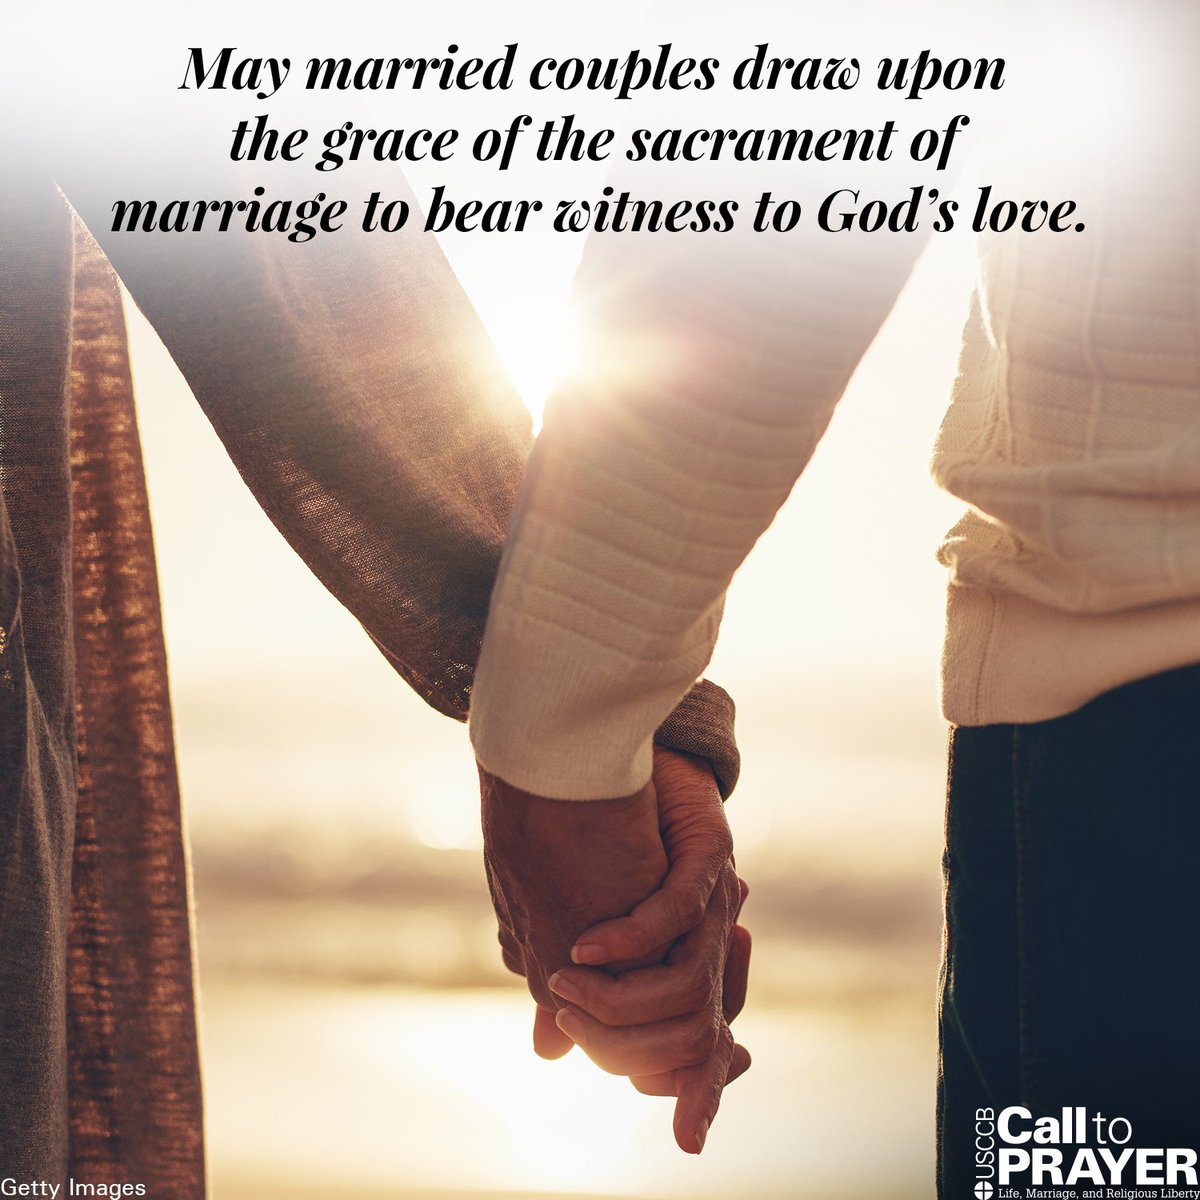 Us Catholic Bishops On Twitter May Married Couples Draw Upon The